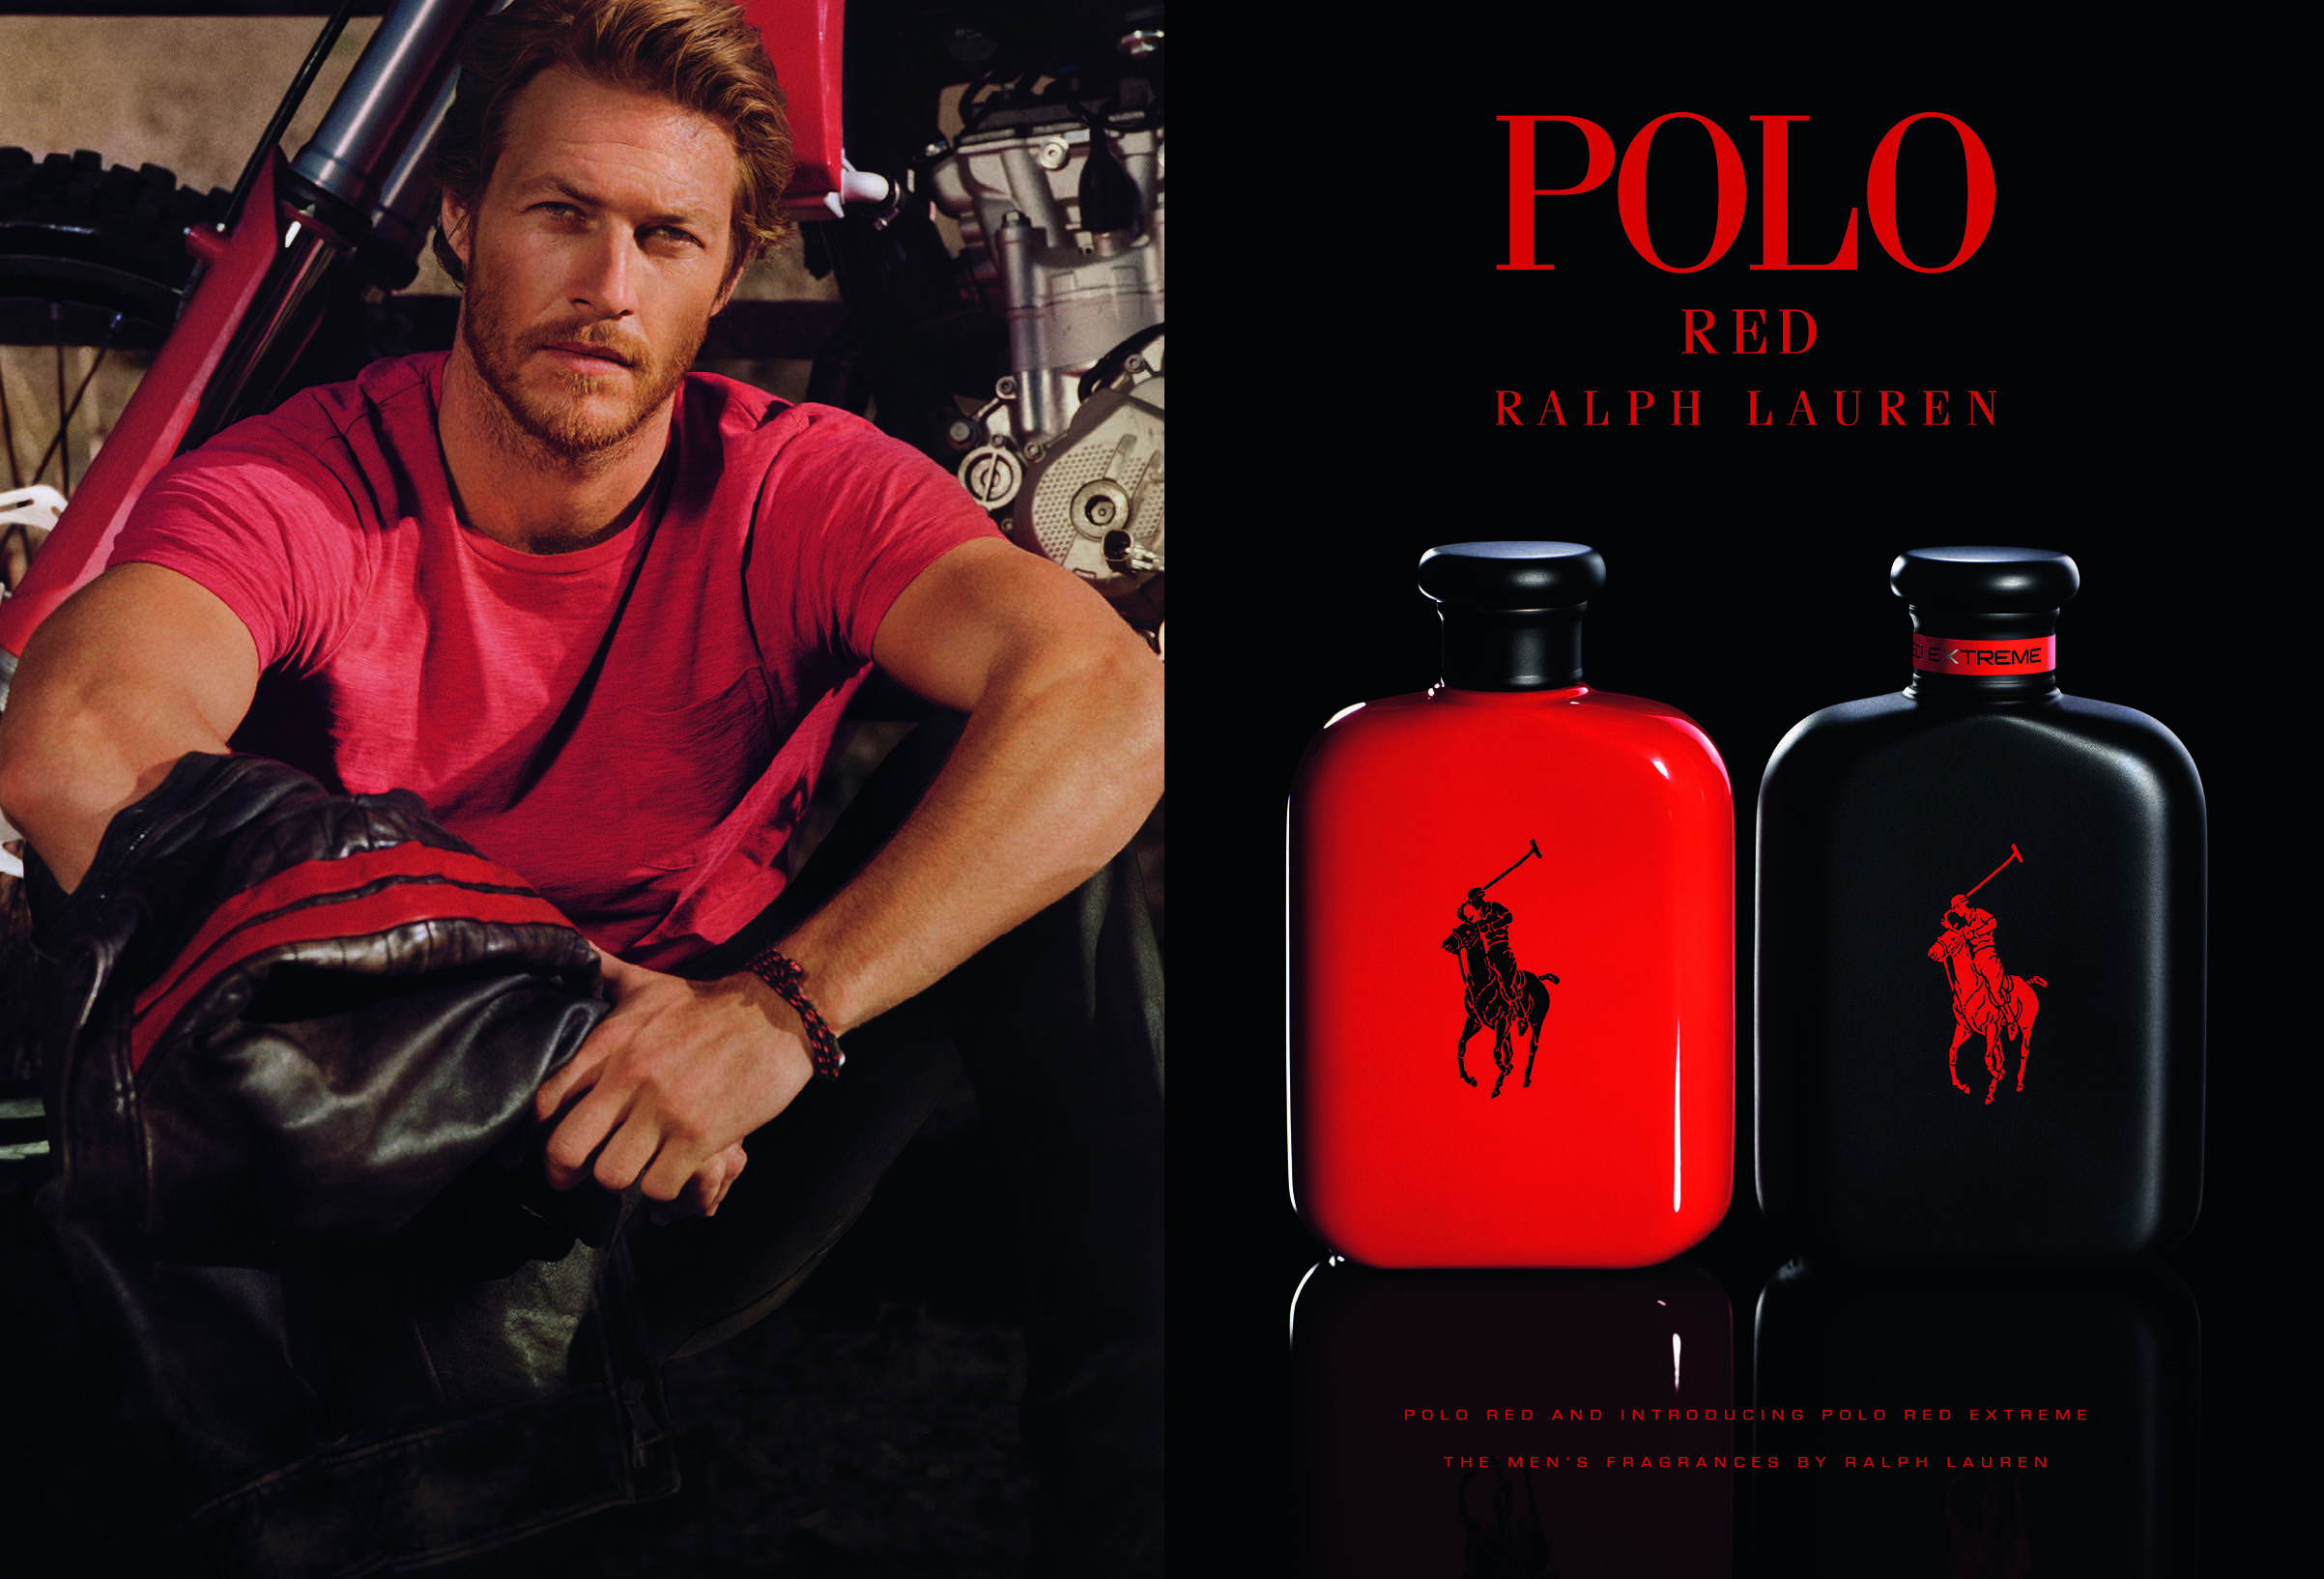 Ralph Lauren #POLO #extreme: takes you to another level.